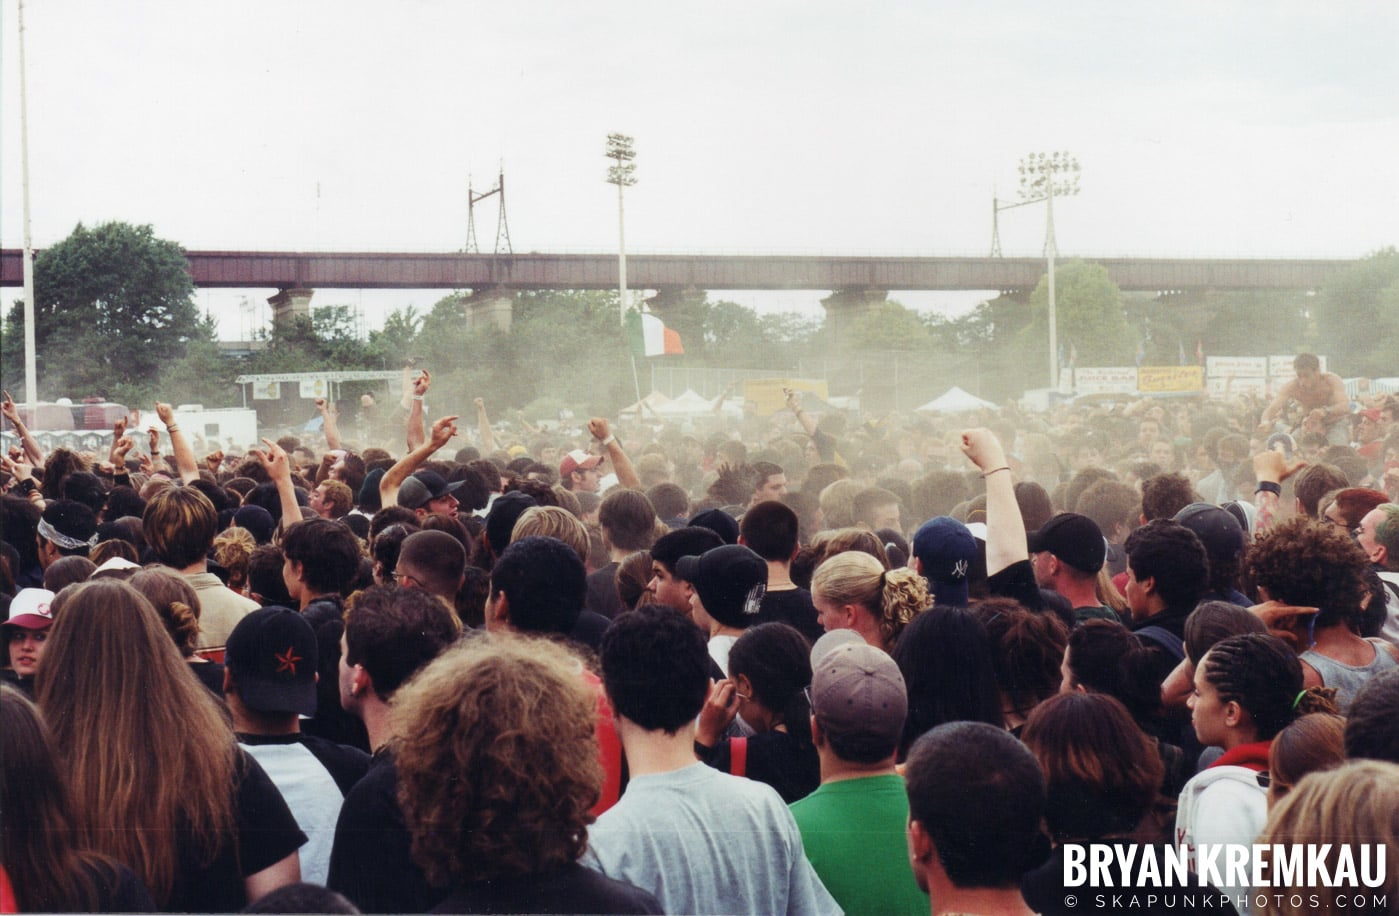 Crowd Shots @ Vans Warped Tour, Randall's Island, NYC - 8.7.04 (14)